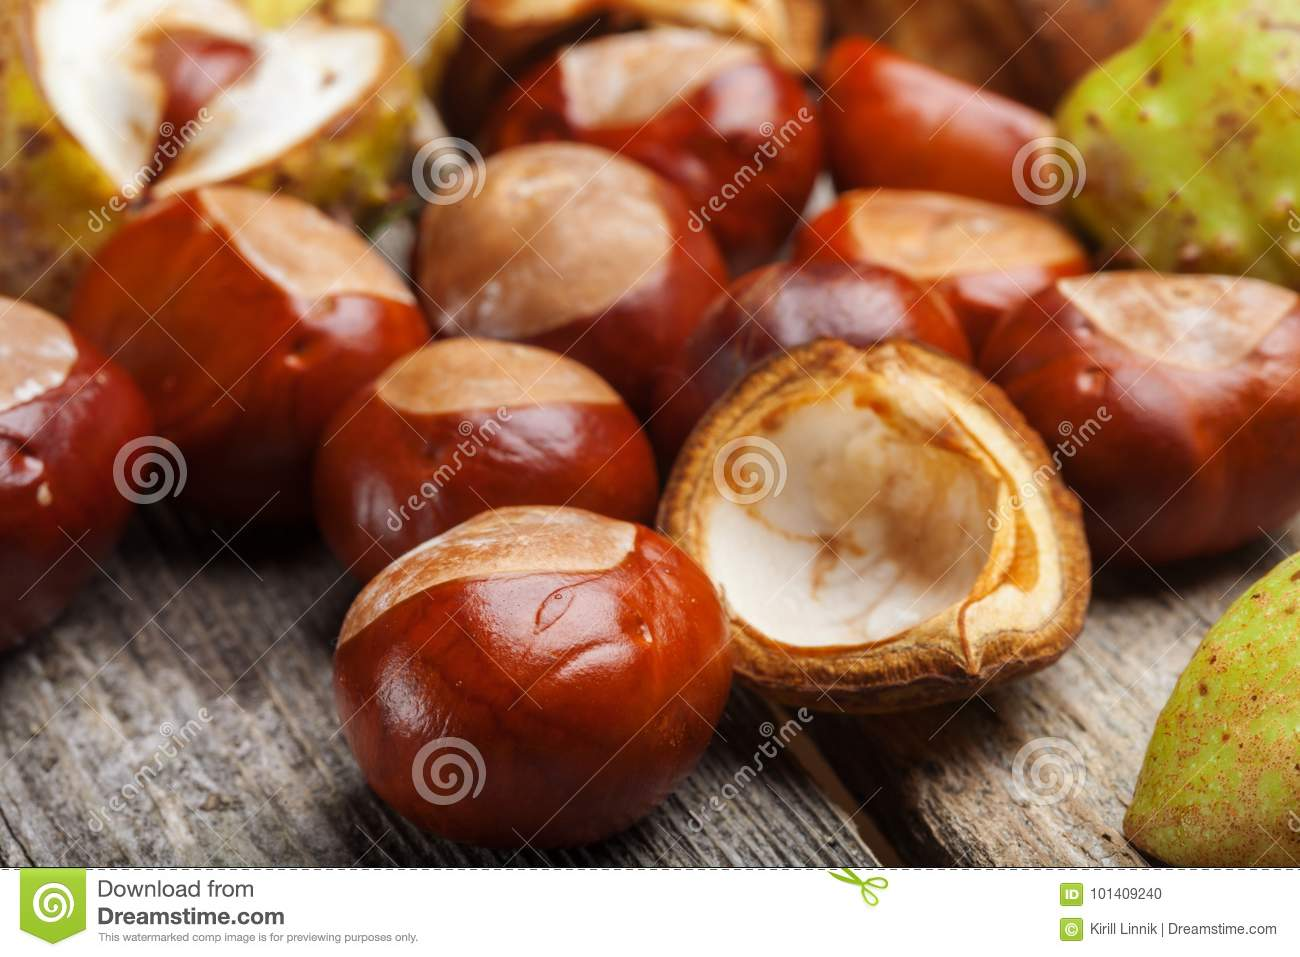 Download Chestnut on the table stock photo. Image of macro, background - 101409240